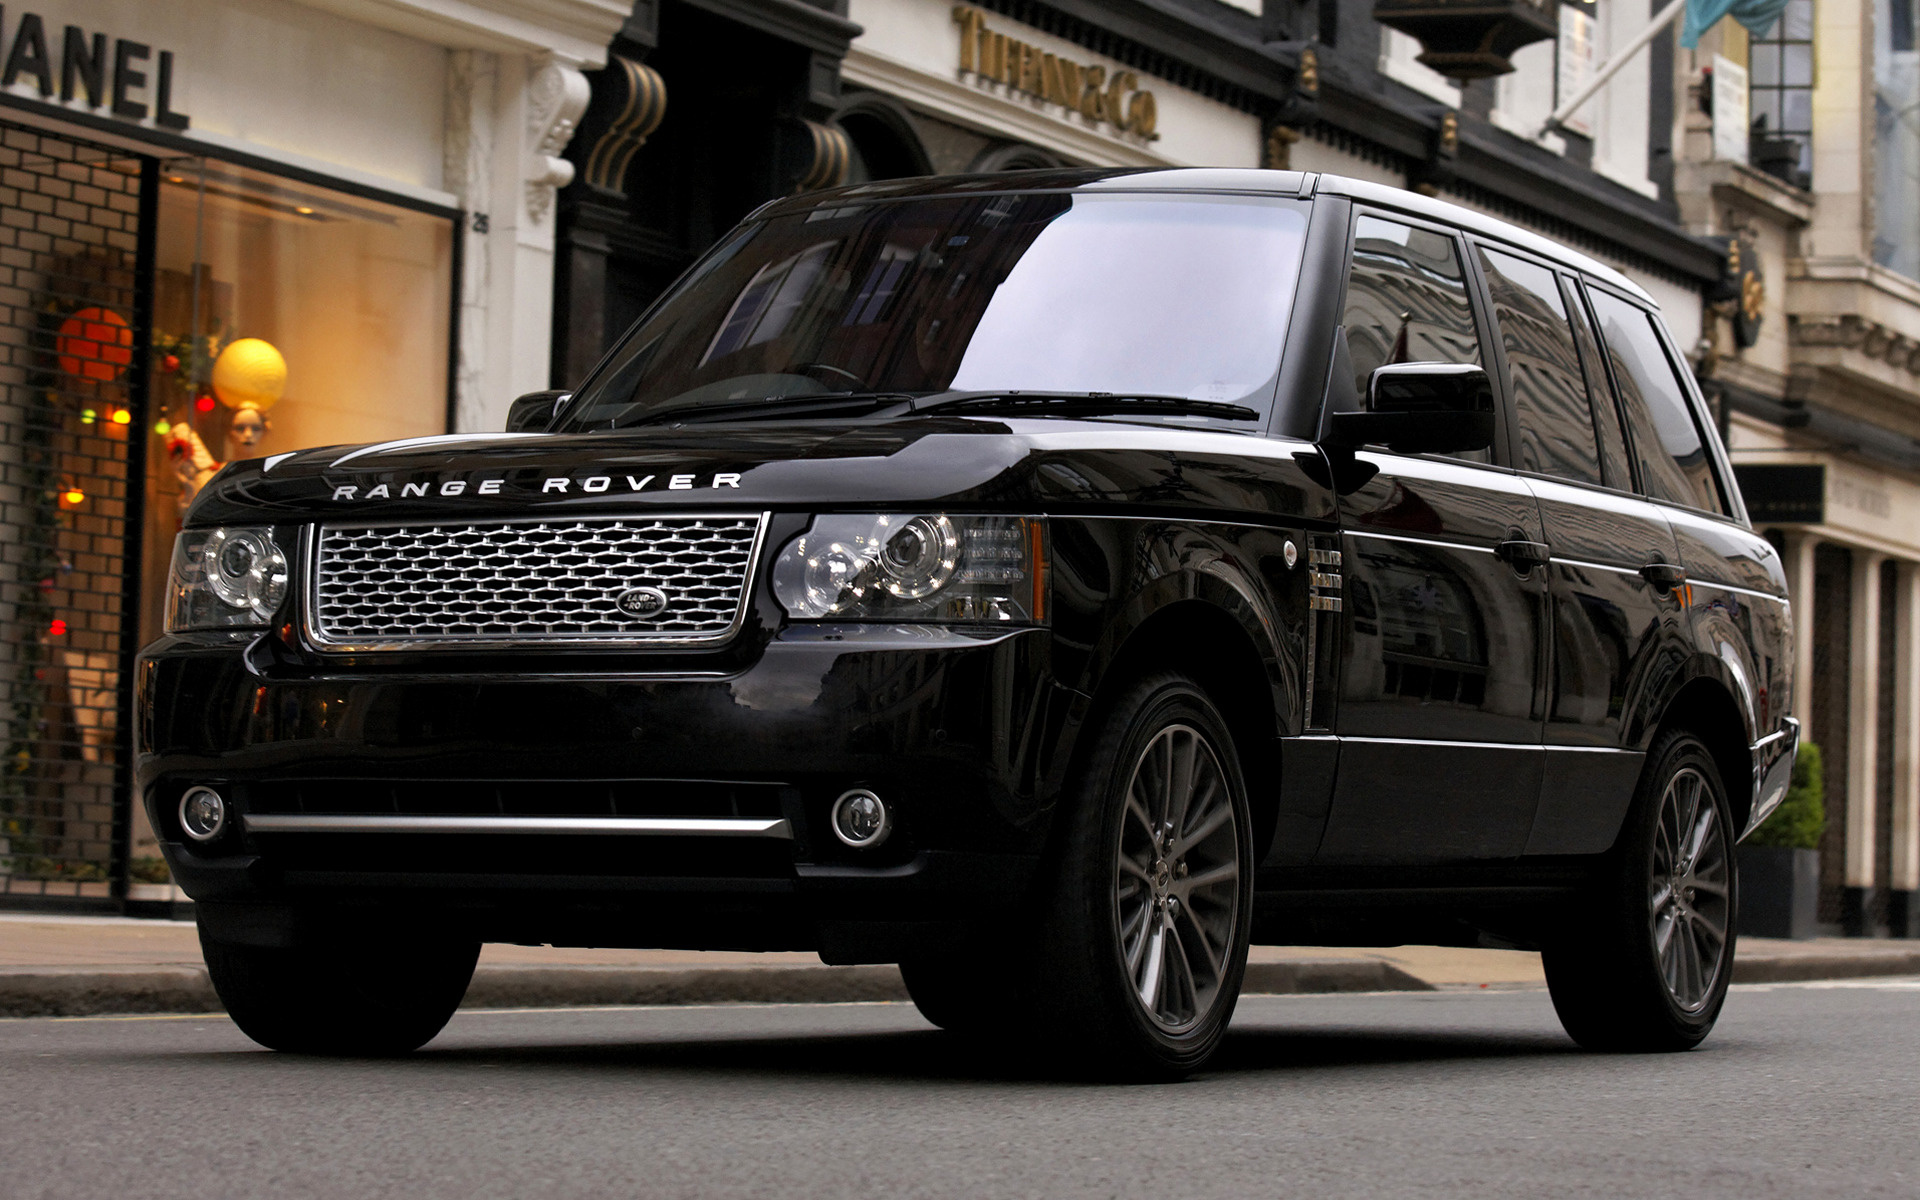 range rover autobiography black 2010 uk wallpapers and hd images car pixel. Black Bedroom Furniture Sets. Home Design Ideas